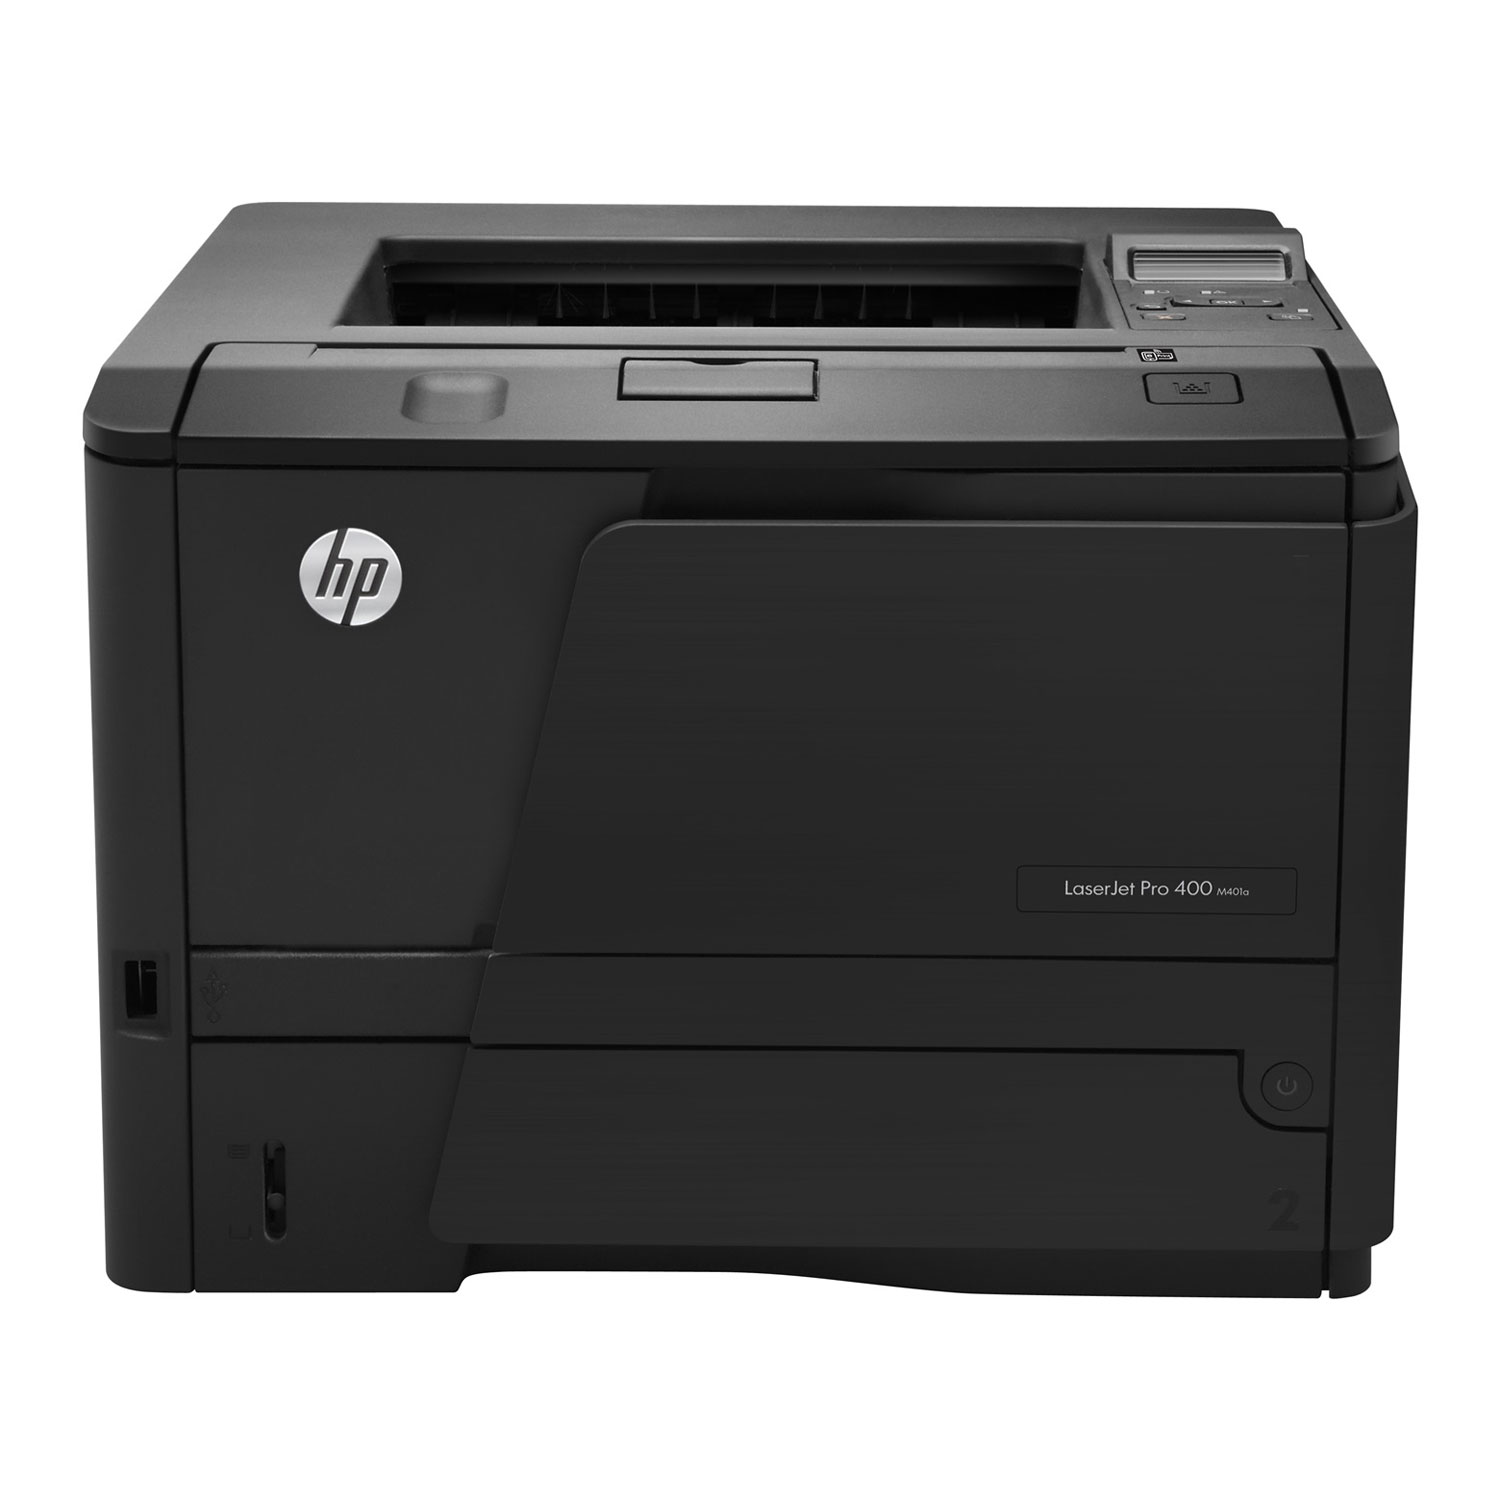 hp laserjet pro 400 m401a cf270a imprimante laser hp sur. Black Bedroom Furniture Sets. Home Design Ideas